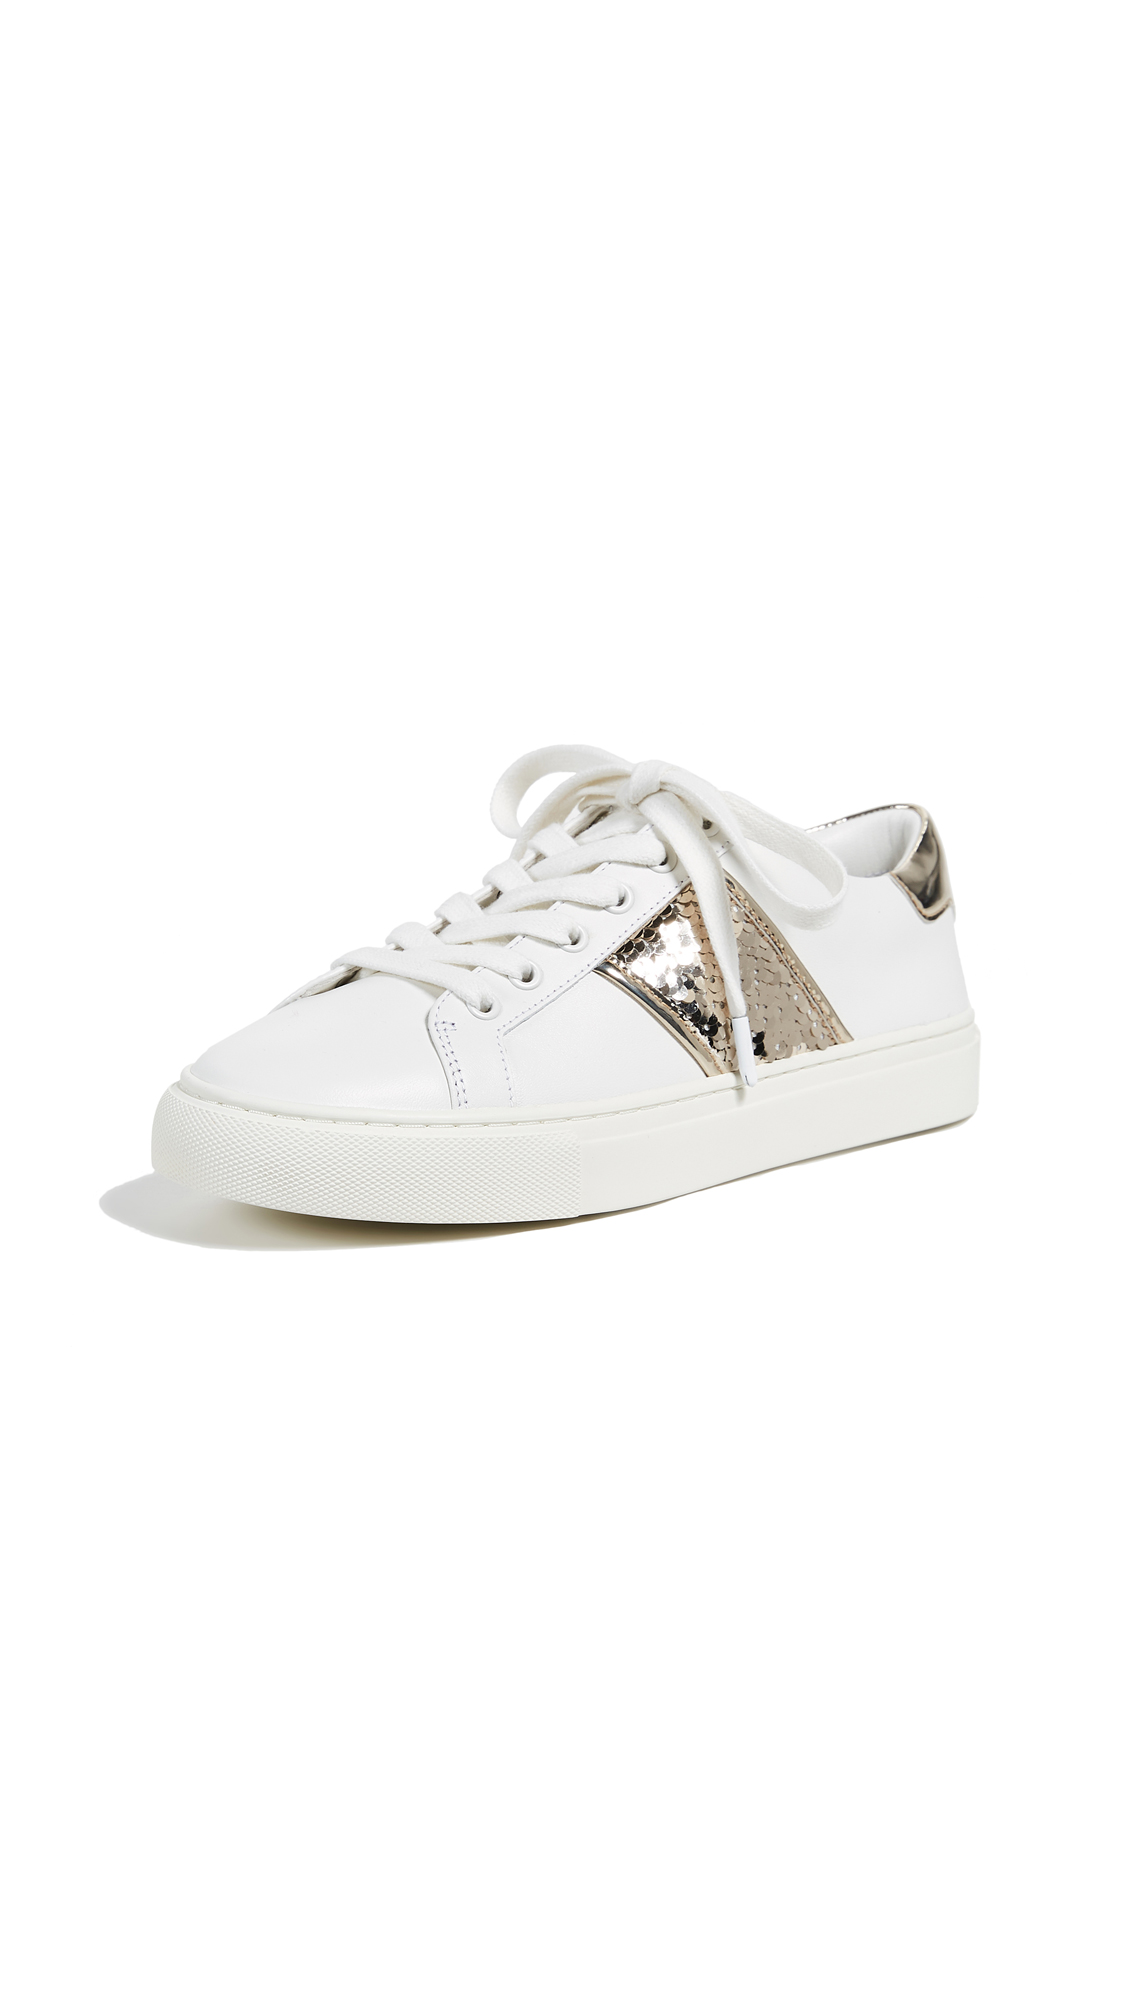 Tory Burch Carter Lace Up Sneakers - Snow White/Spark Gold